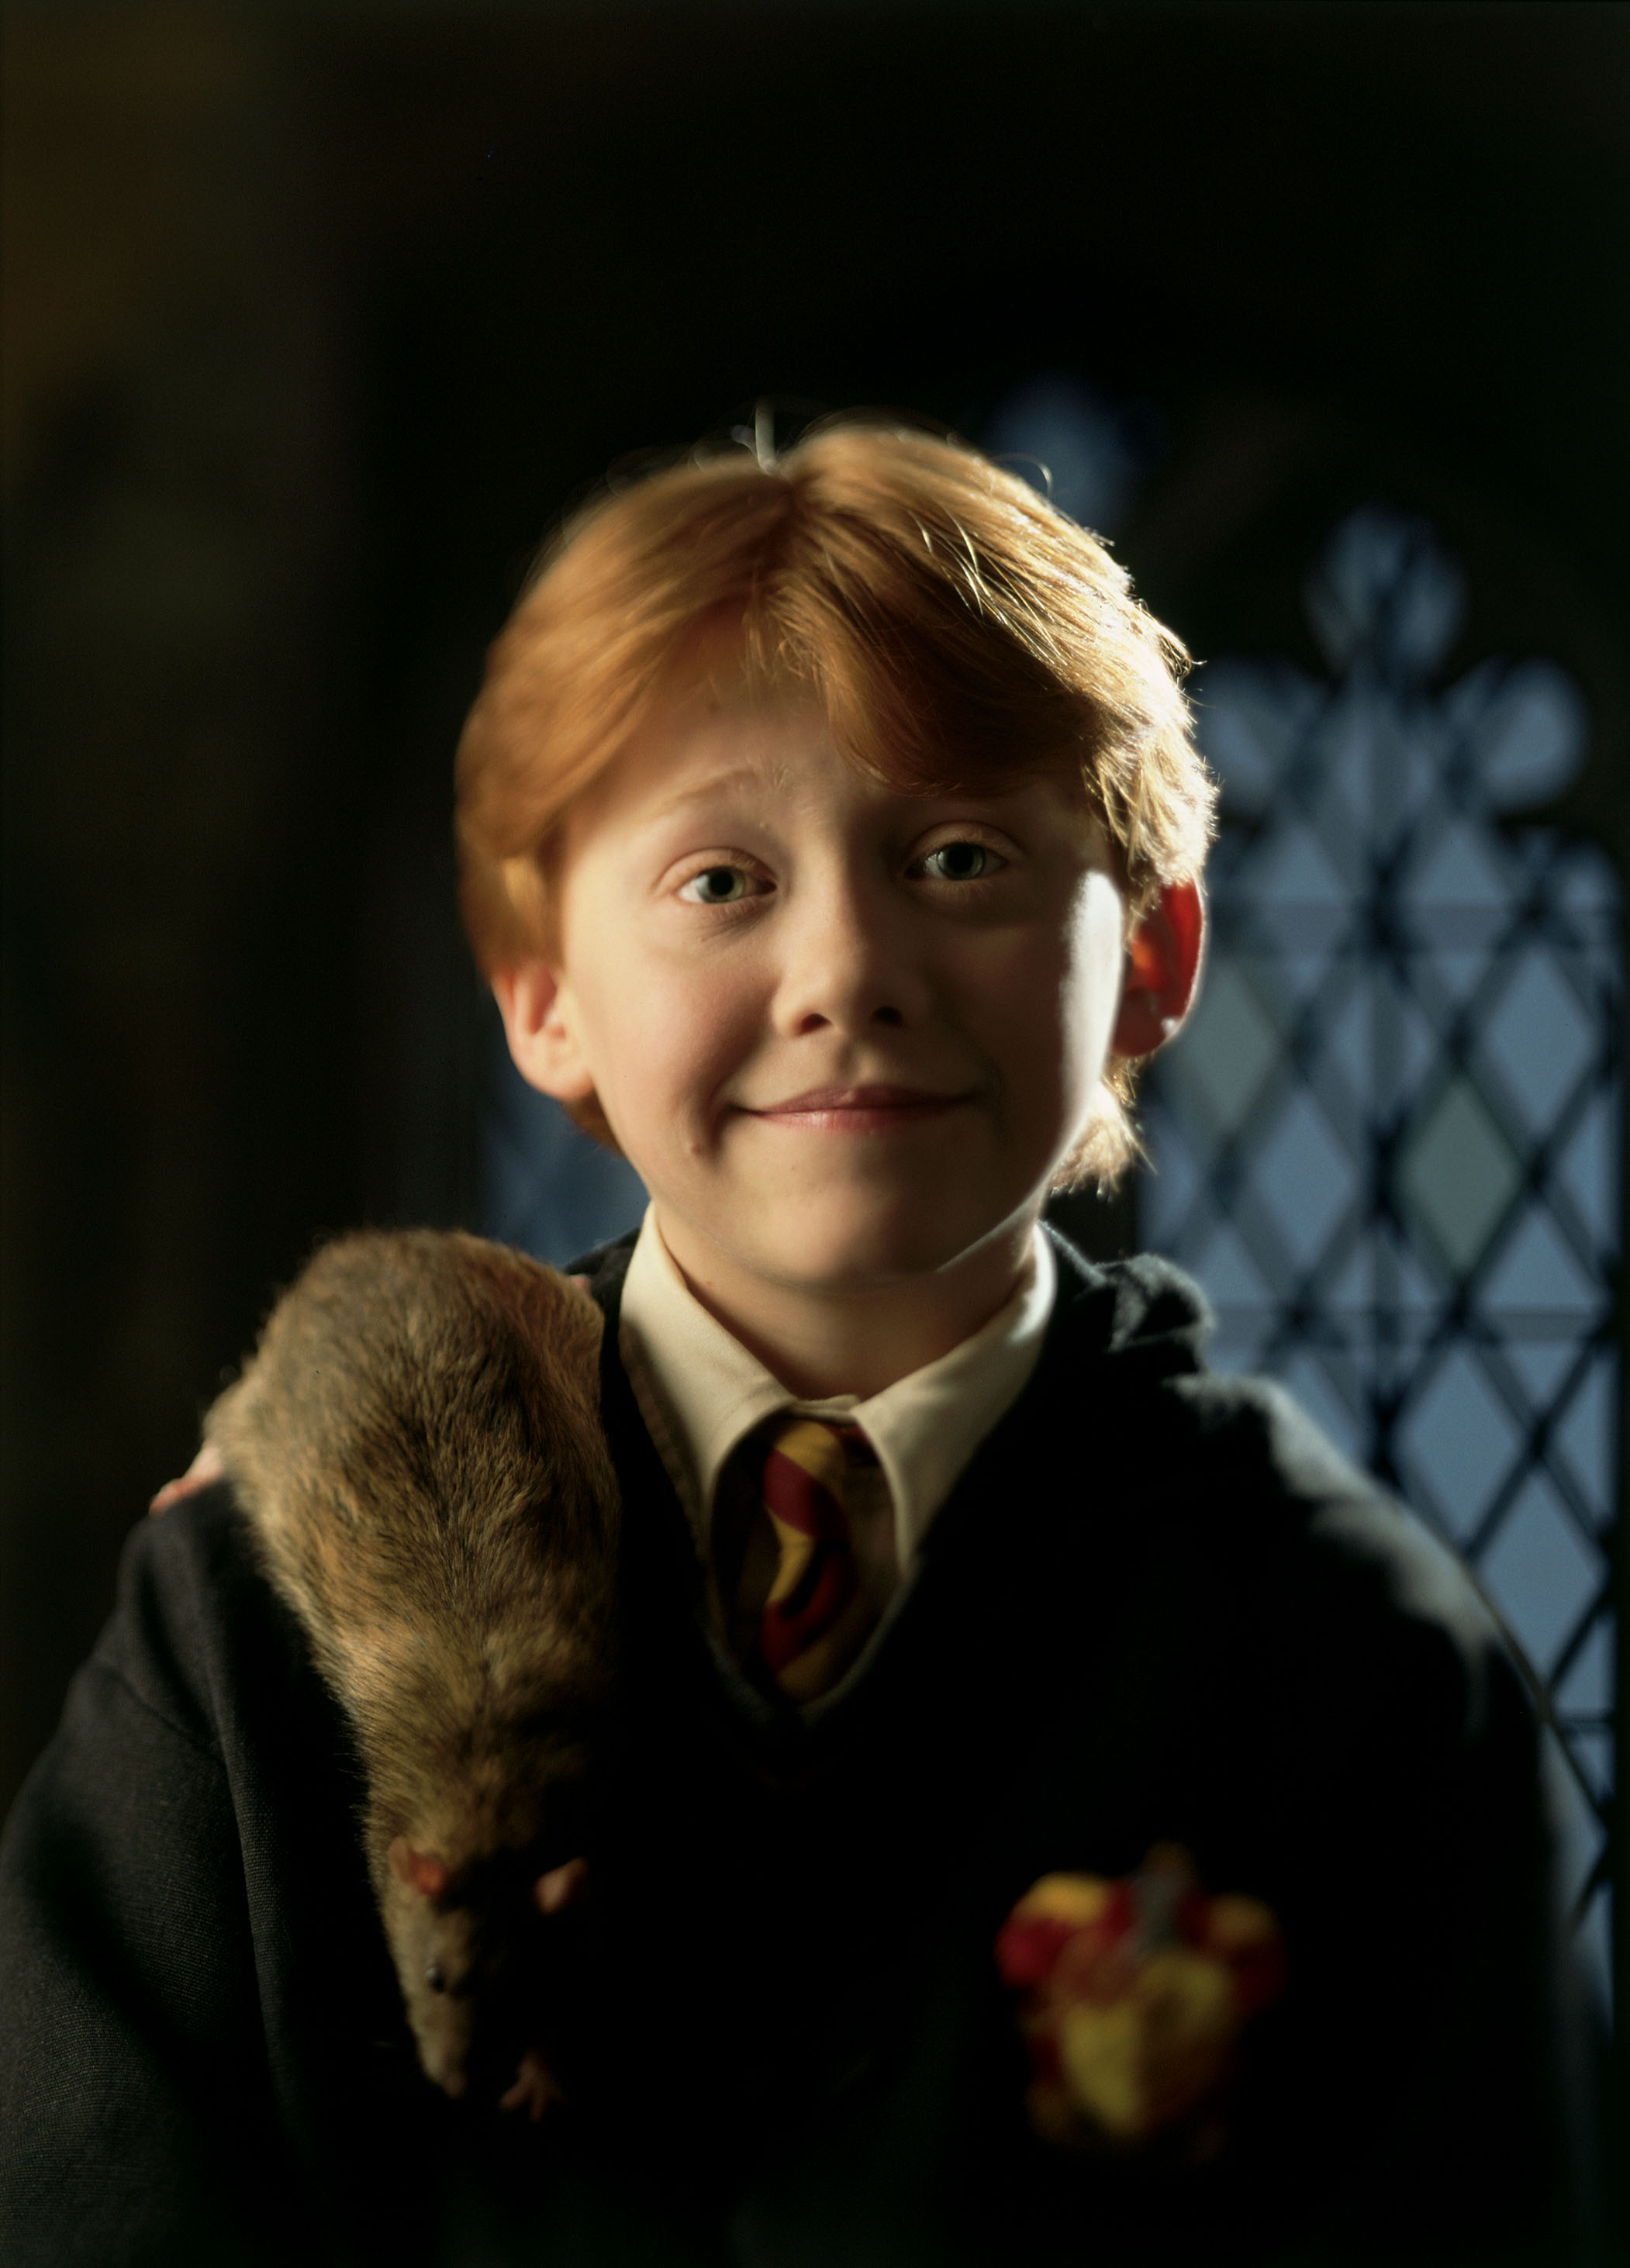 Ron Weasley WB F1 Ron with Scabbers on shoulder 00393692